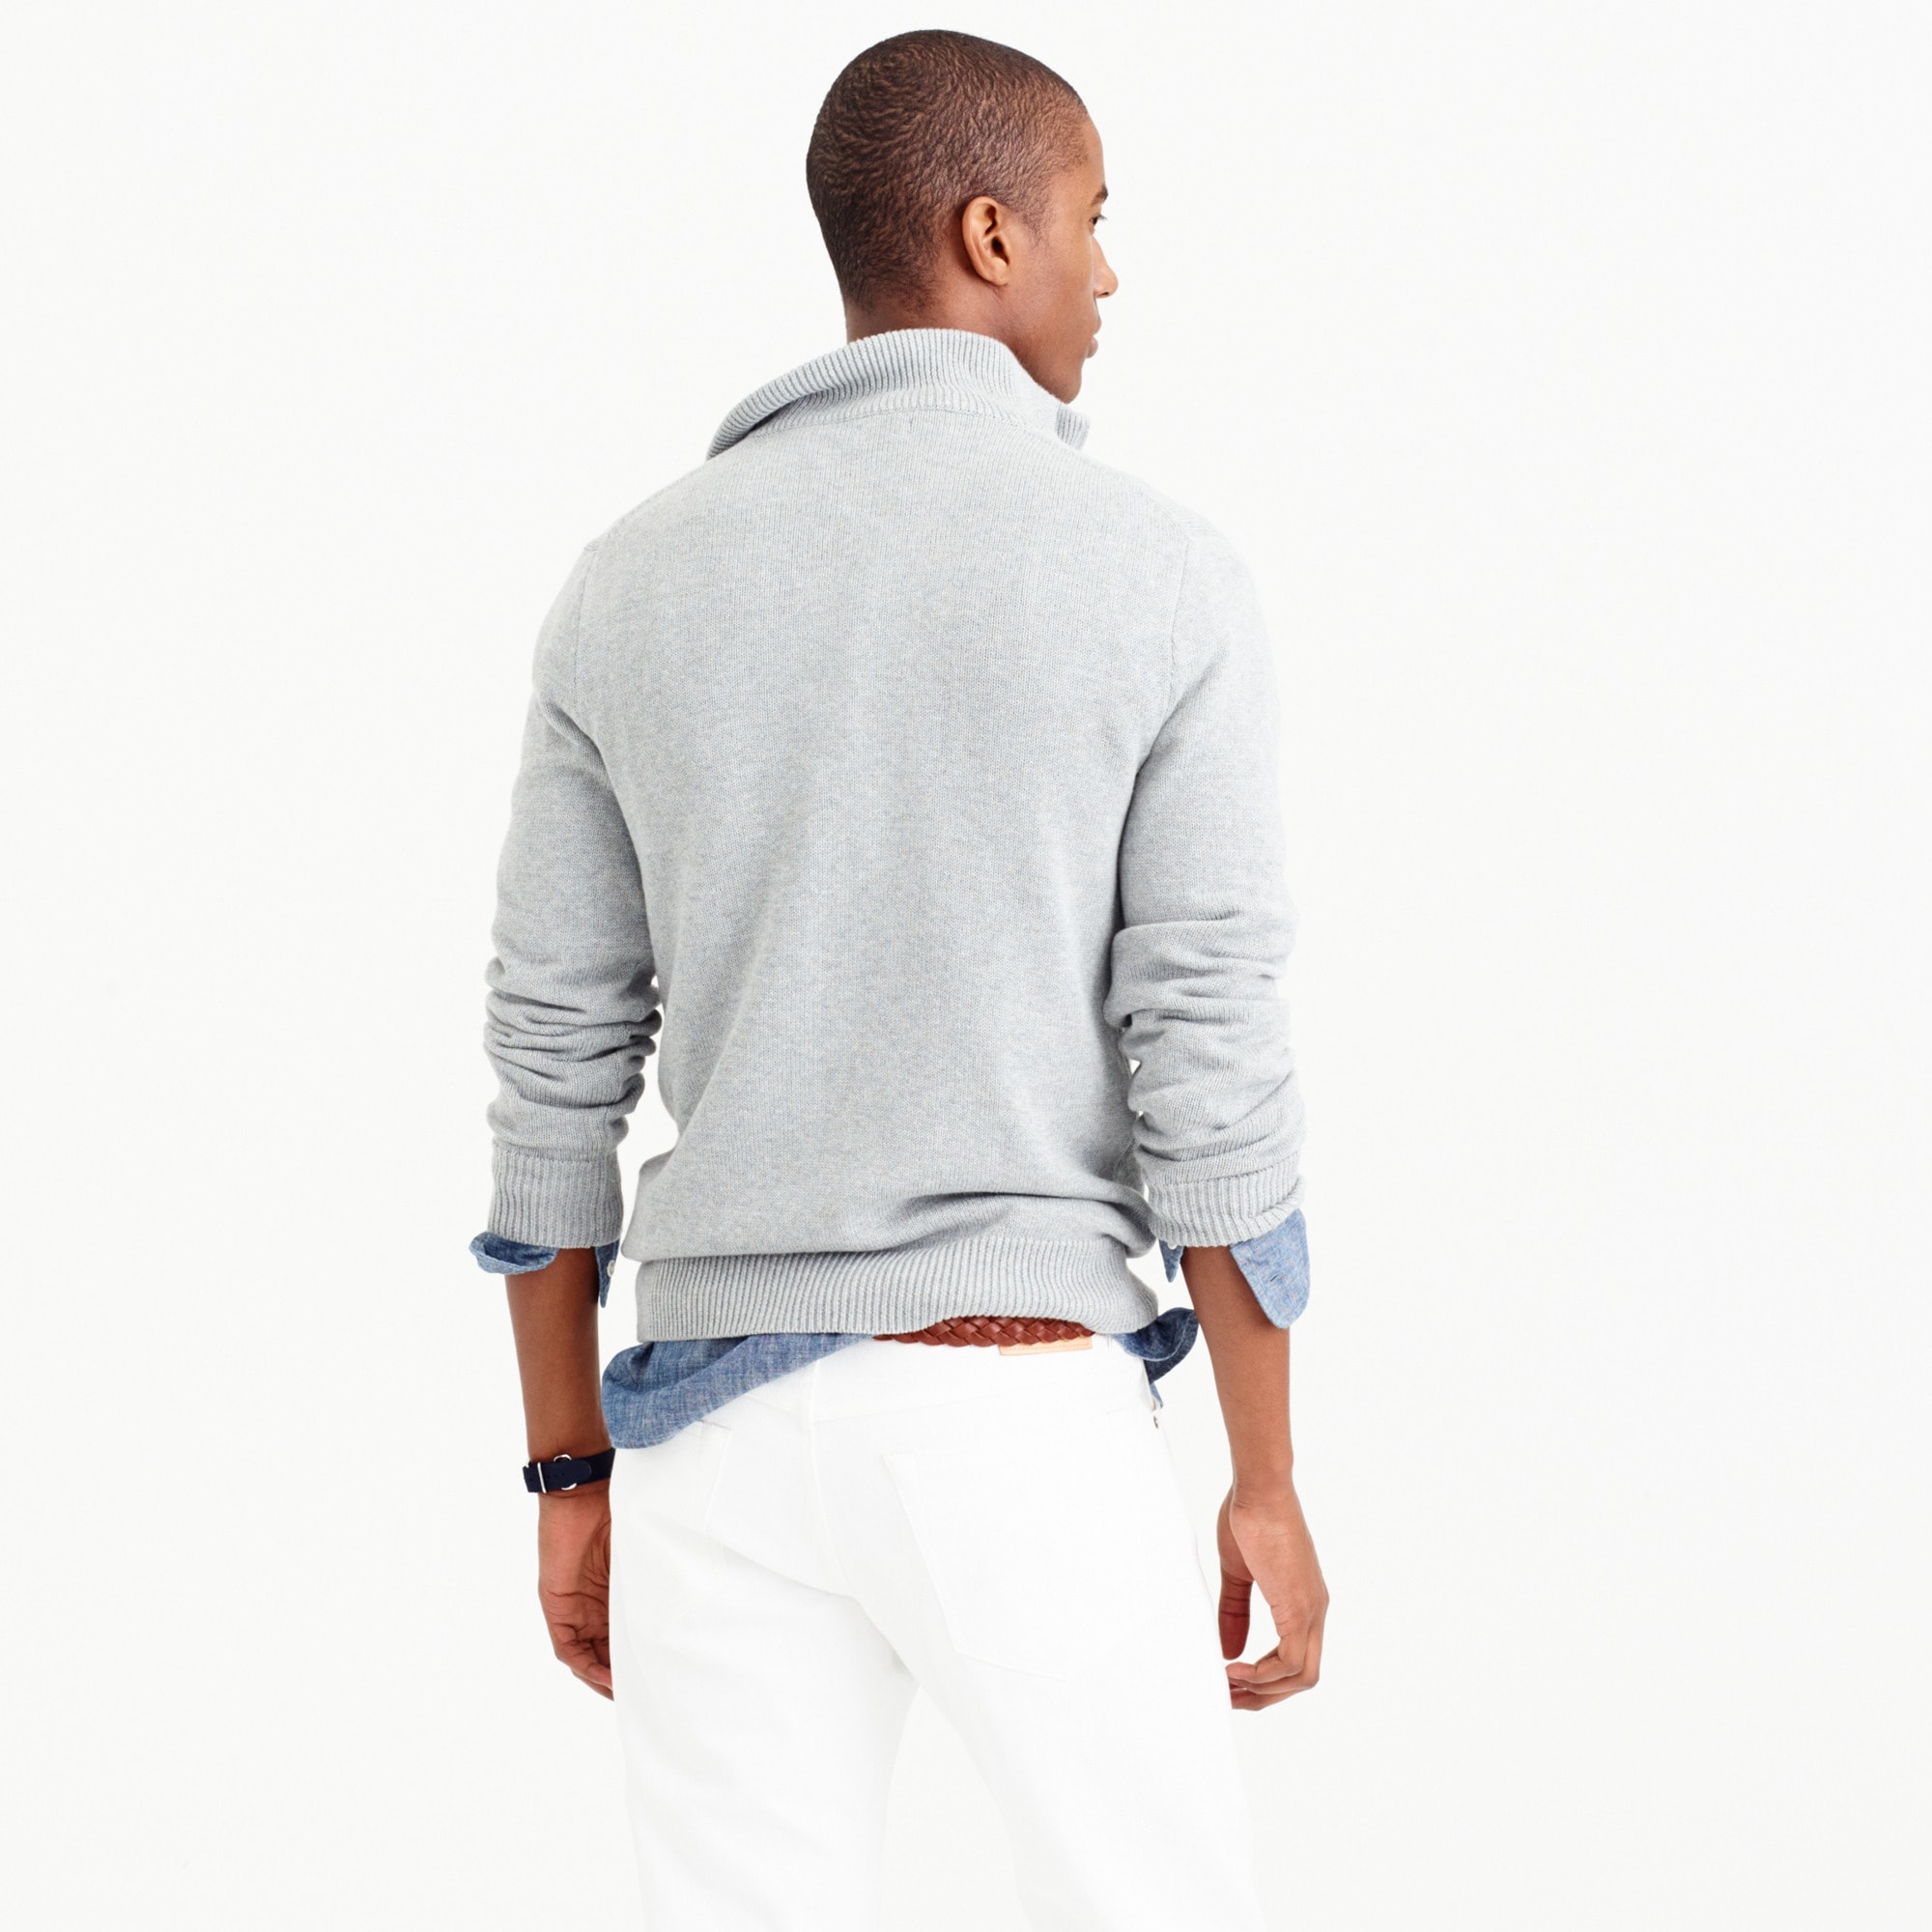 Image 3 for Tall cotton-cashmere half-zip sweater